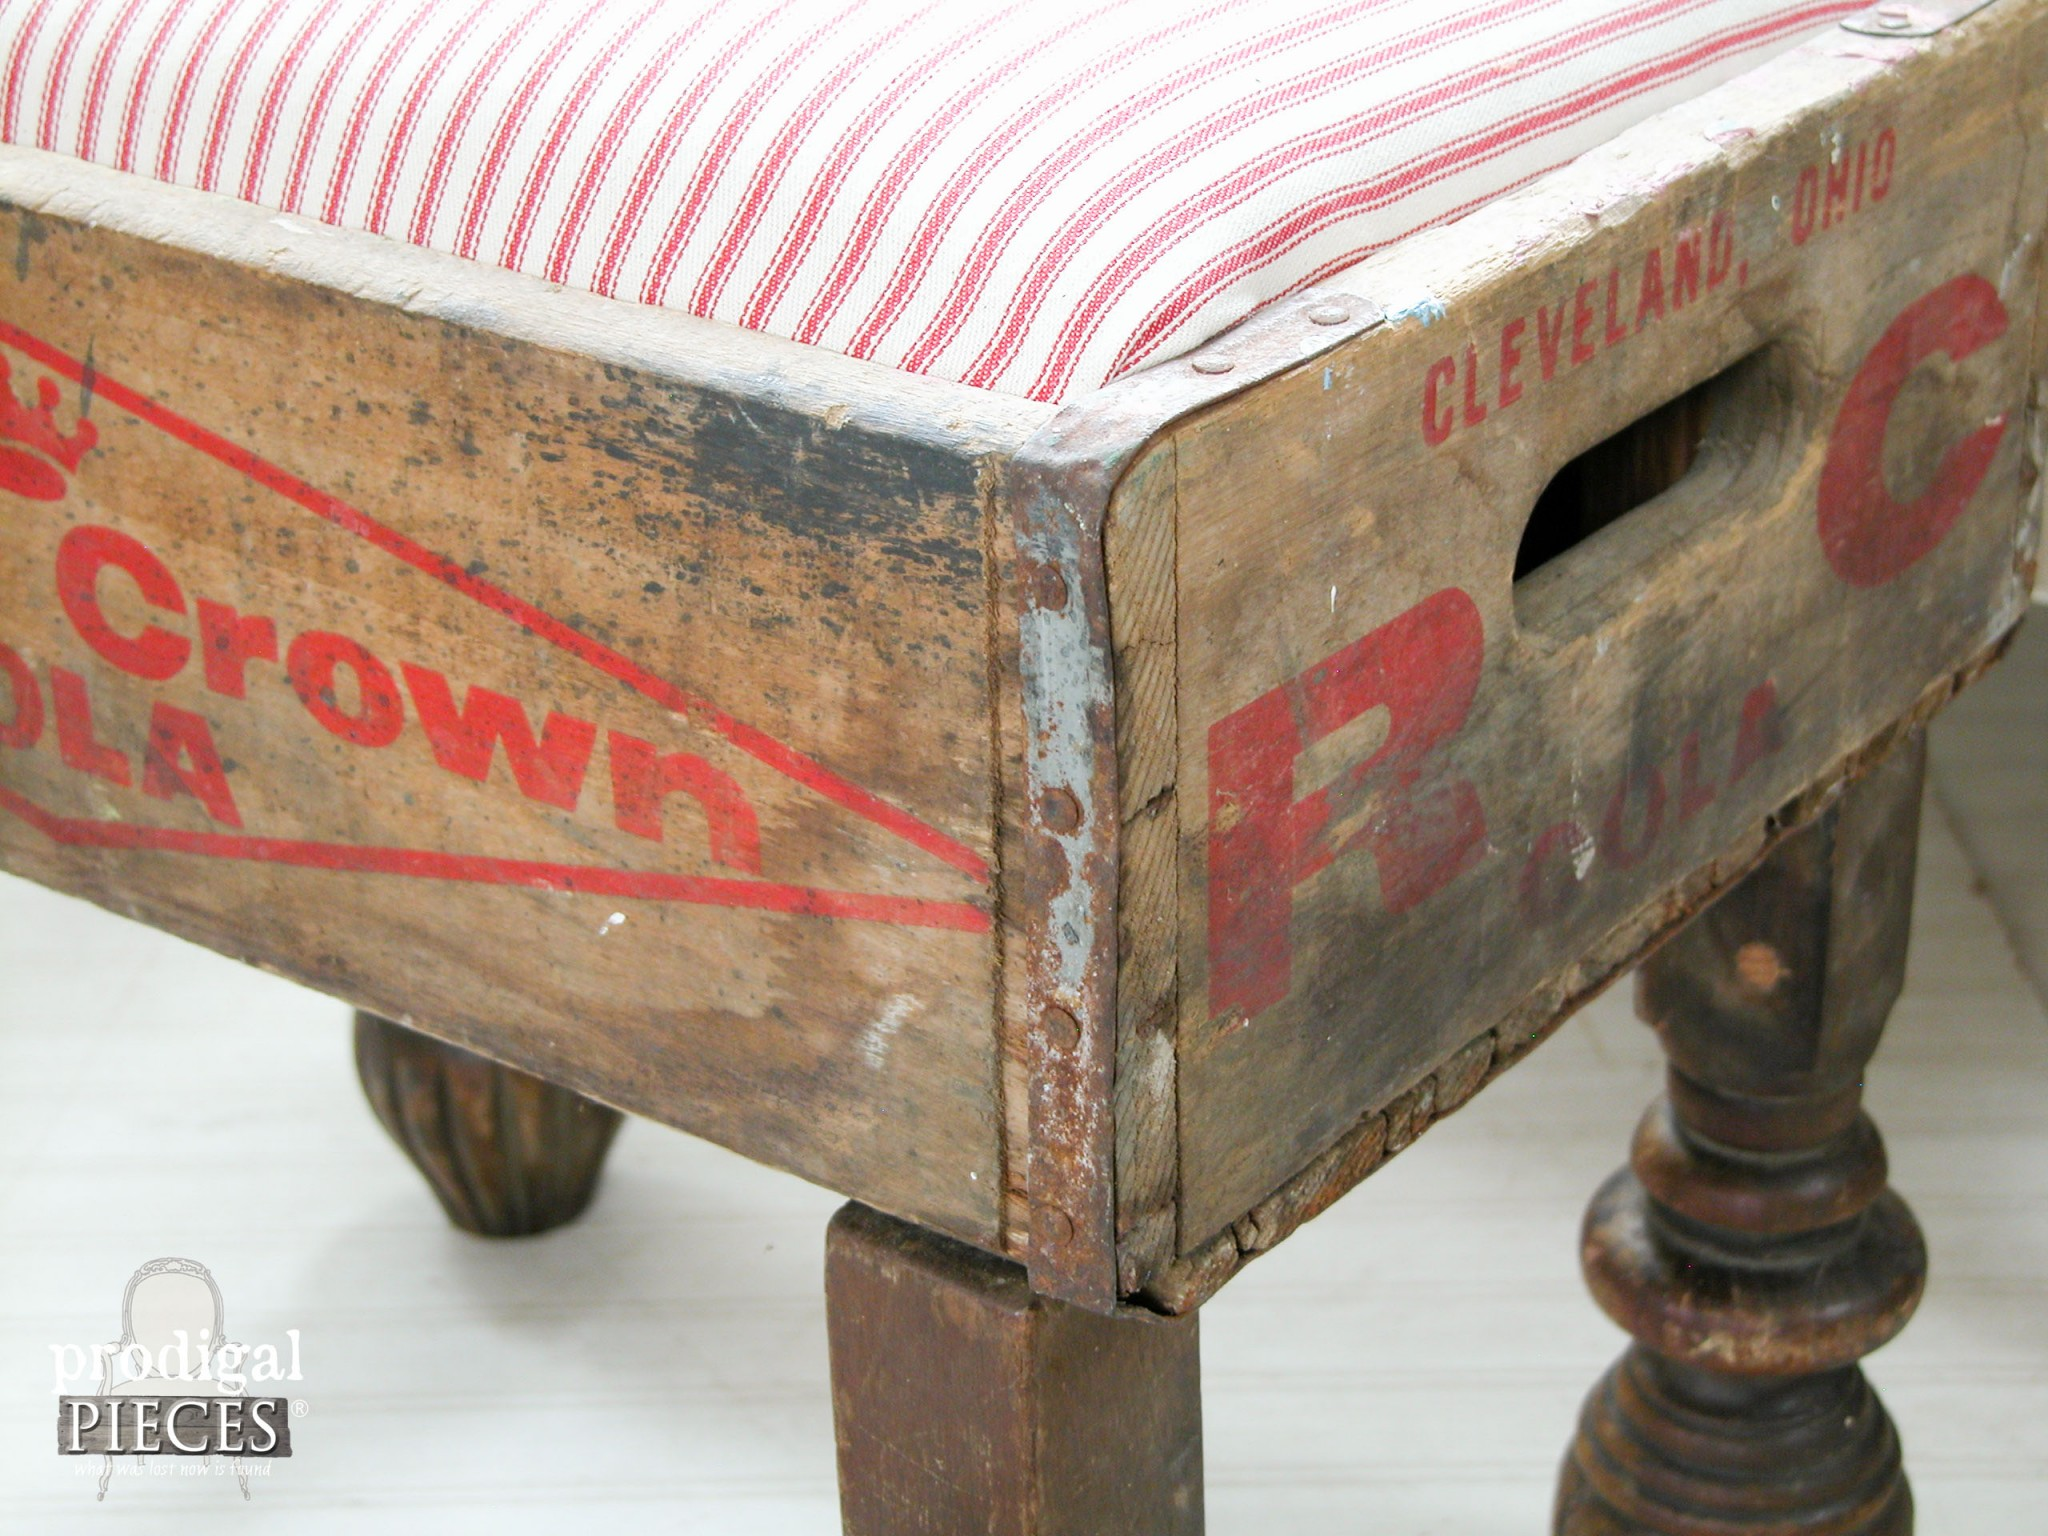 Patina Perfection on Vintage Soda Crate Stool by Prodigal Pieces | www.prodigalpieces.com